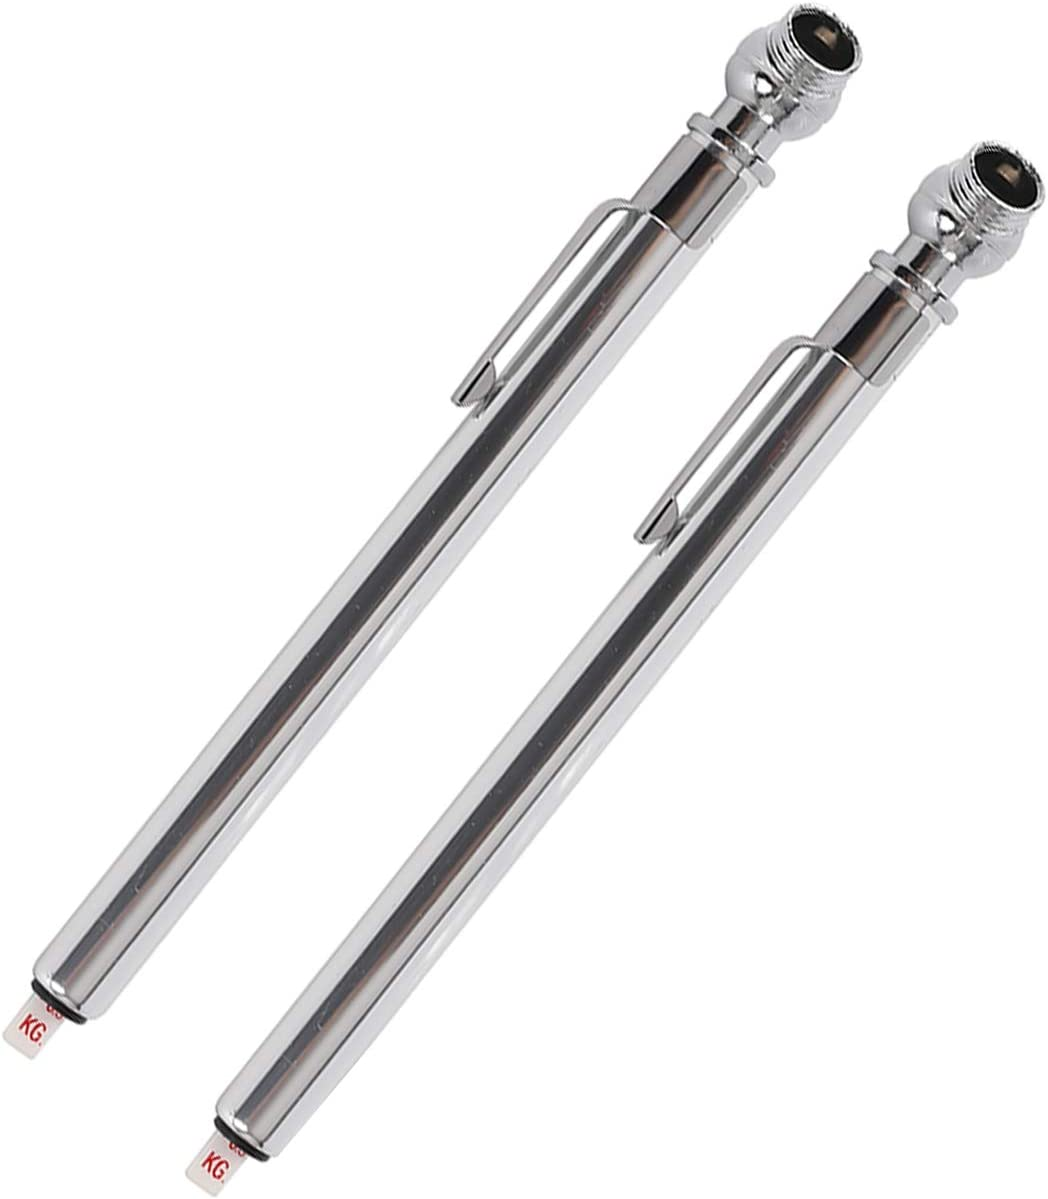 GODESON Pencil Tire Pressure Gauge Silver Analog Tire Pressure Gauge for Car Vehicle Truck Bicycle Single Zinc Alloy Chuck Air Pressure Gauge (10-50PSI) Pack of 2